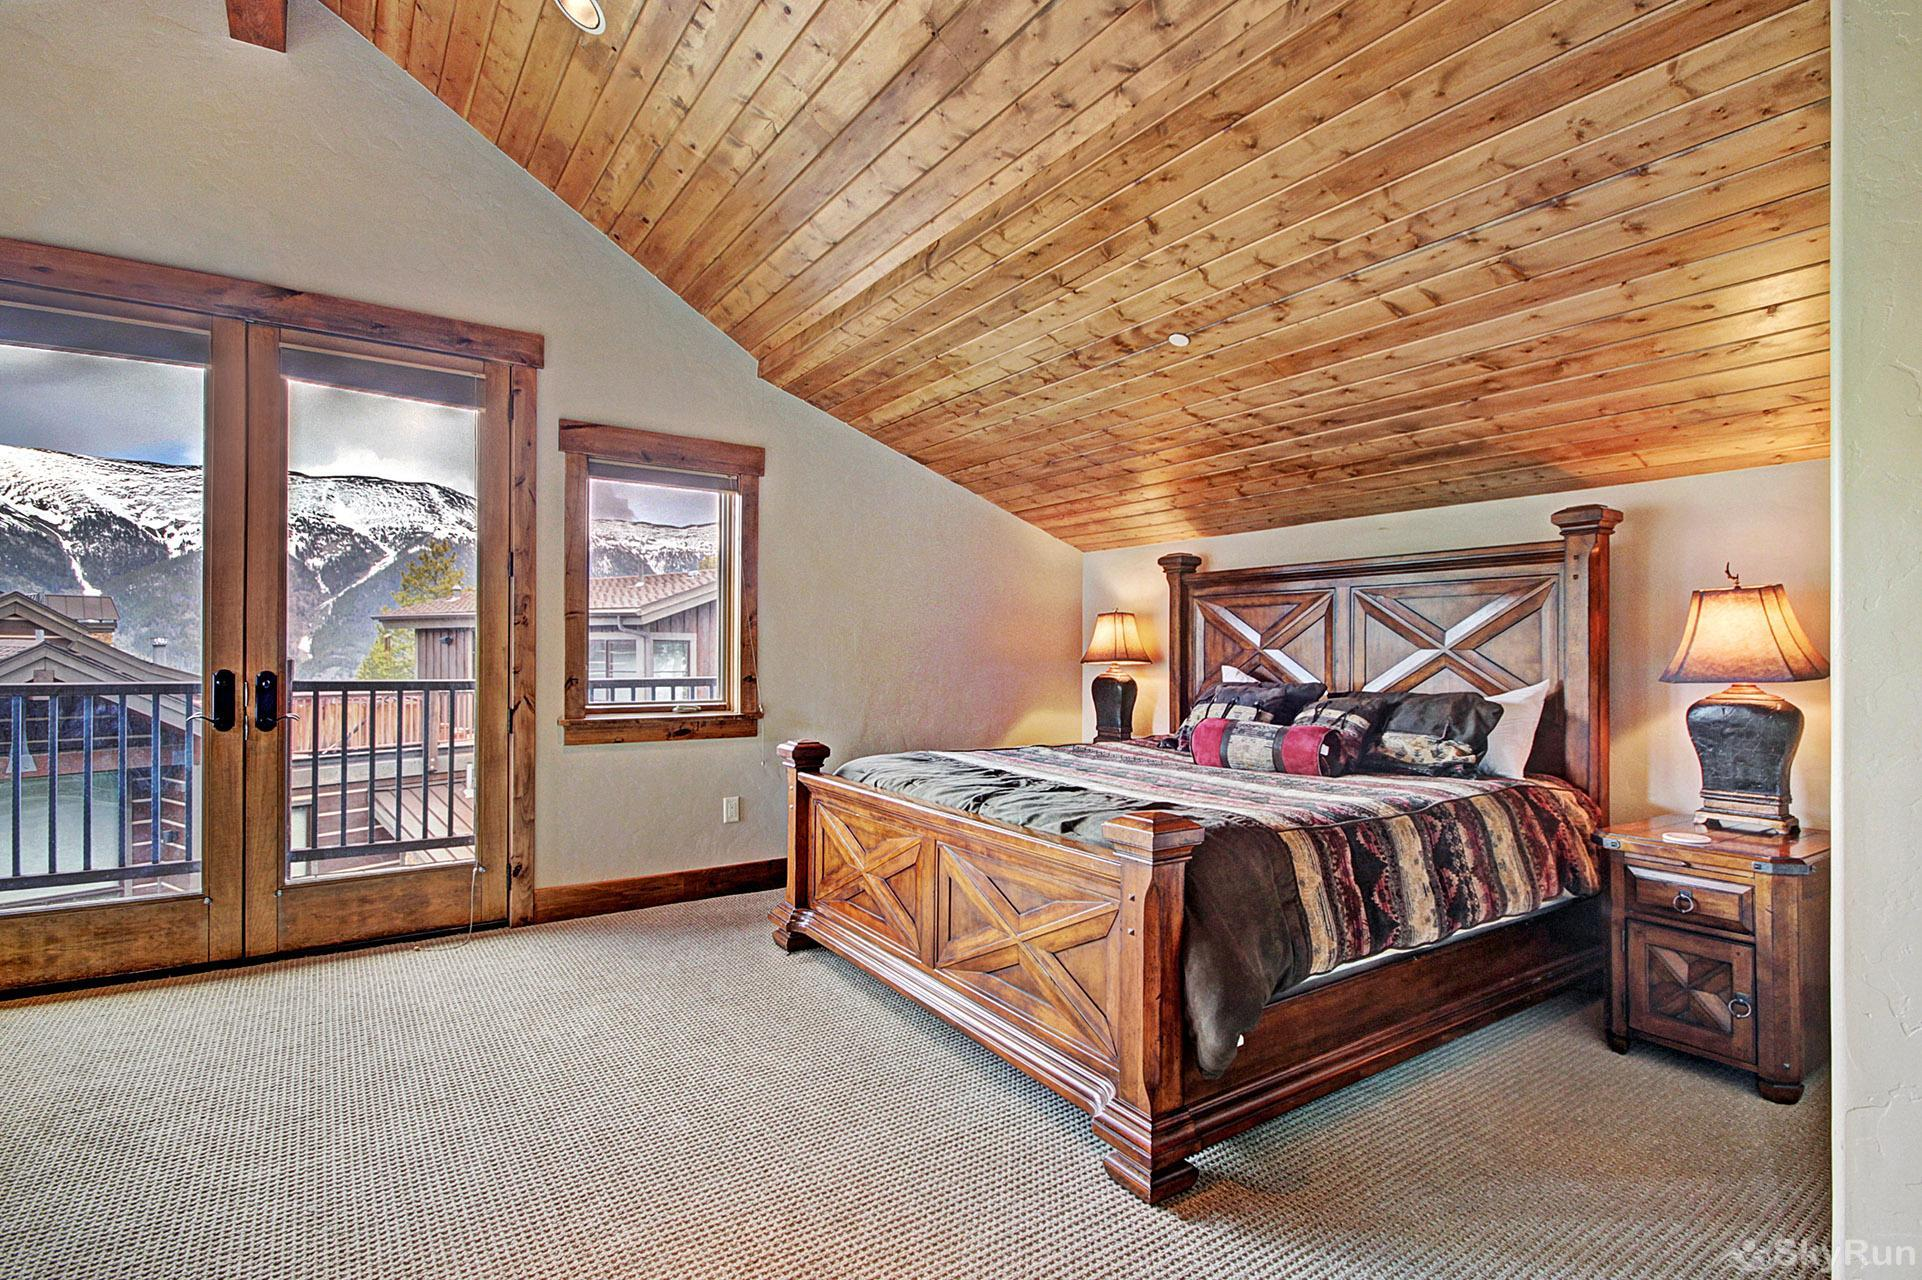 LR962 The Timberline at Lewis Ranch Upstairs Master Bedroom